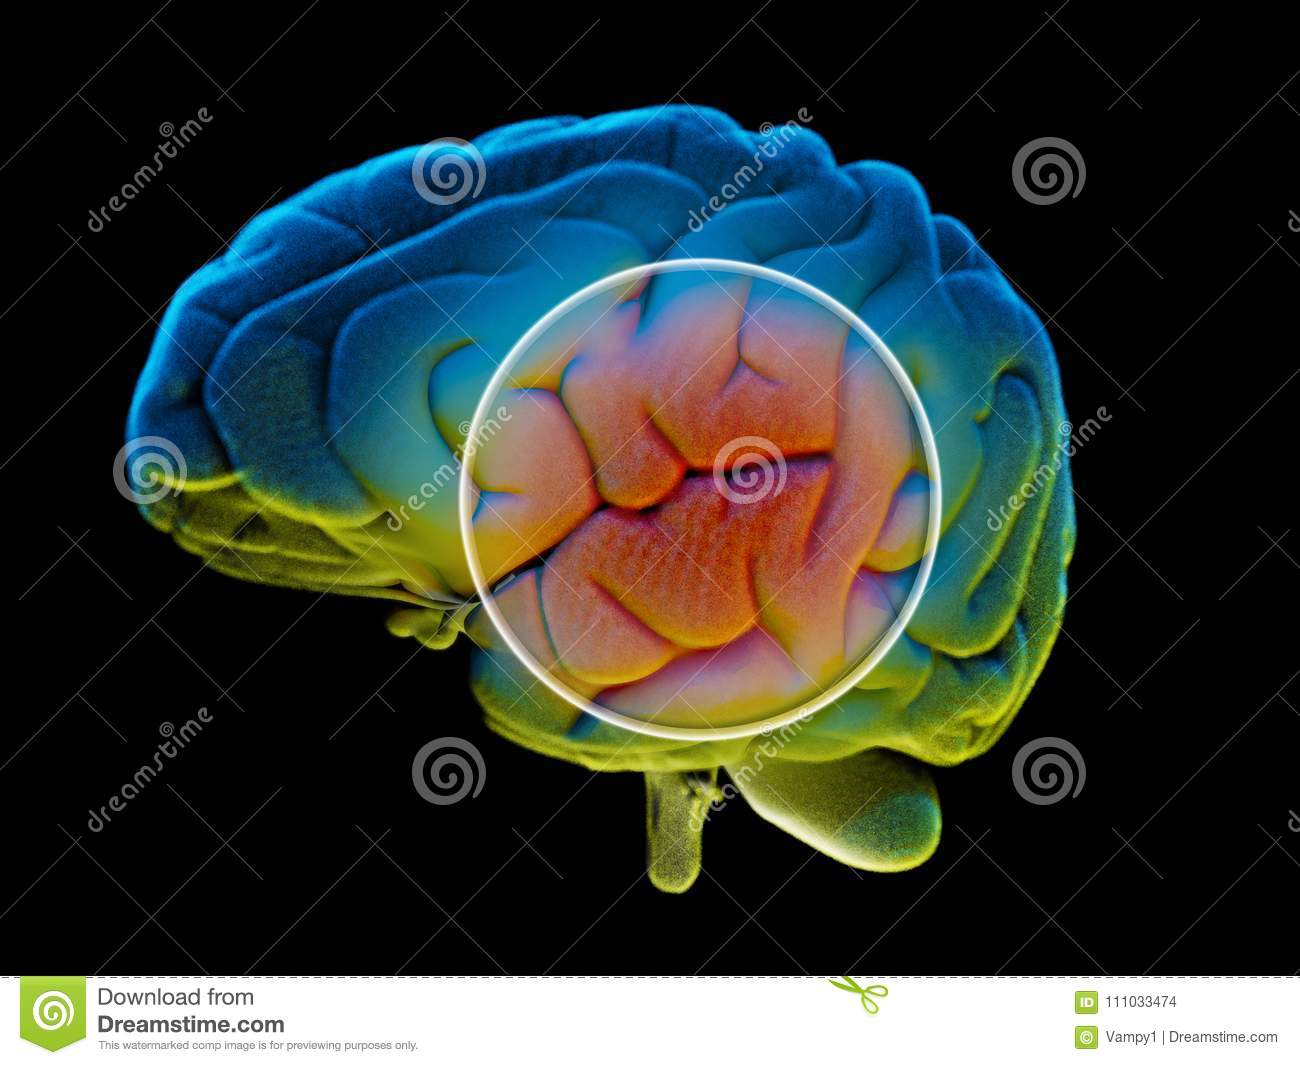 Brain degenerative diseases, Parkinson, synapses, neurons, Alzheimer`s